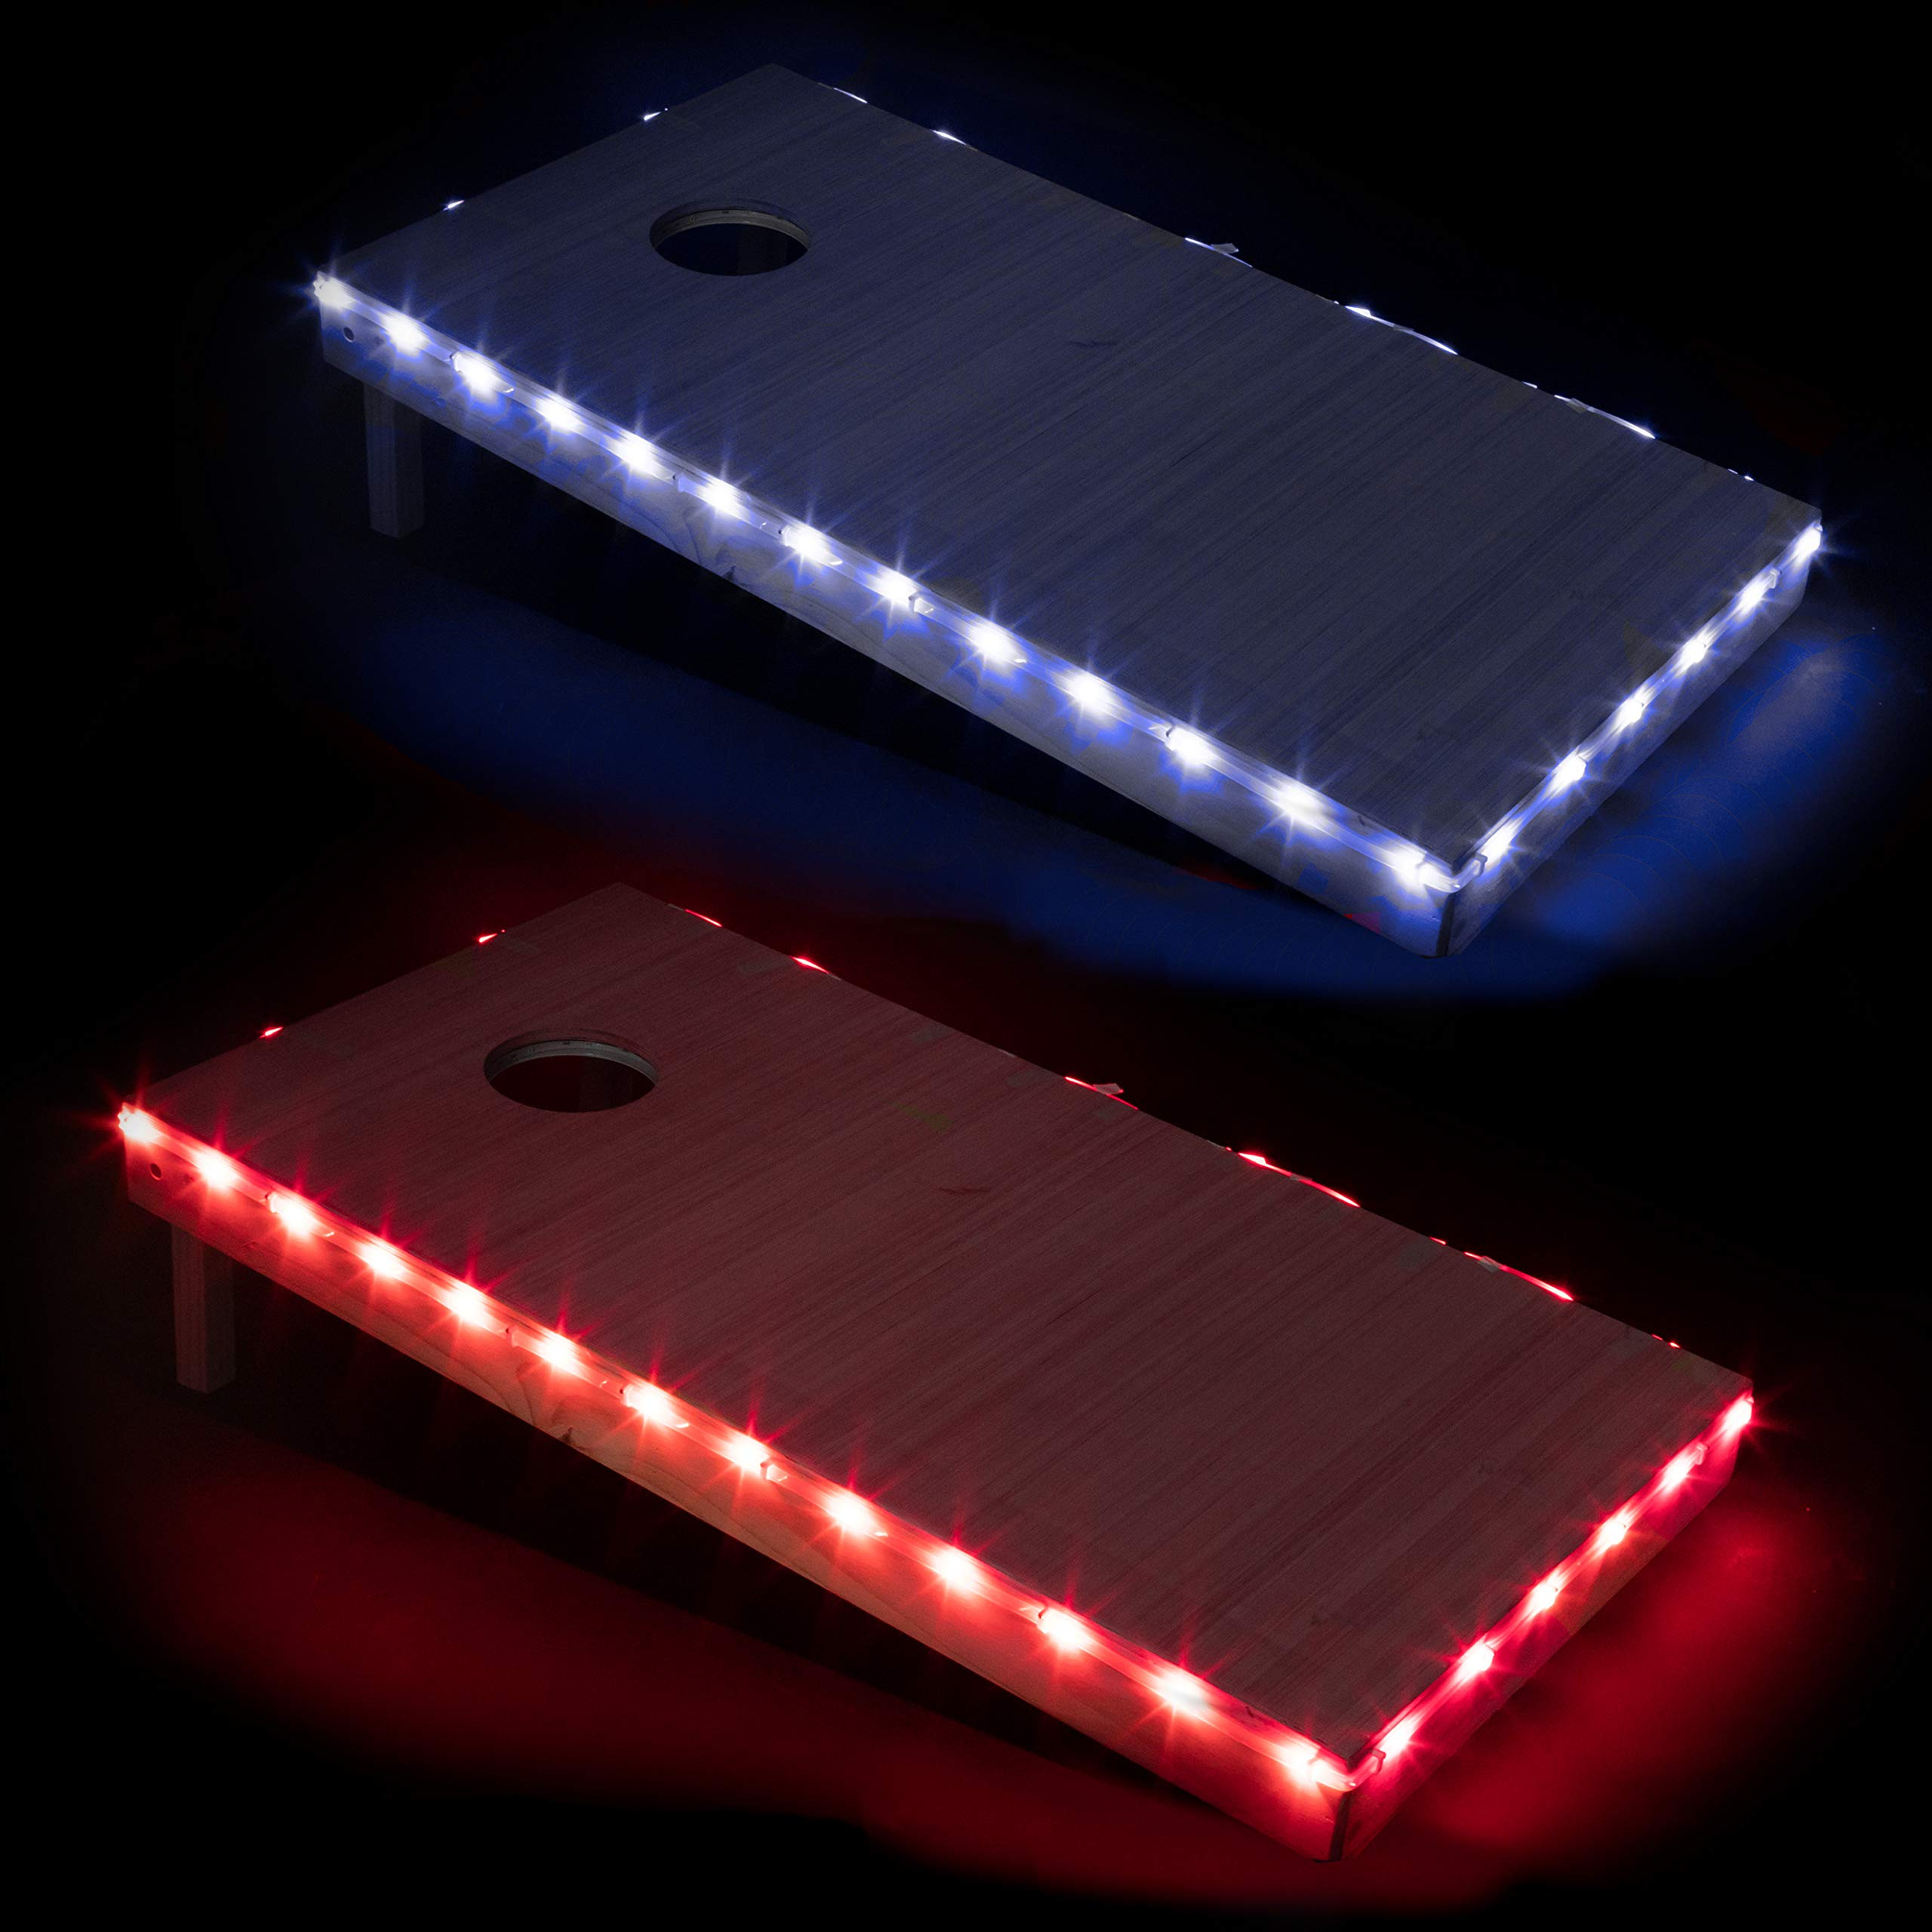 Play Platoon LED Cornhole Board Lights Set of 2, Red & Blue - Corn Hole Edge Lighting Kit for Lighted Outdoor Night Games - Bright, Long Lasting, Easy to Install by Play Platoon